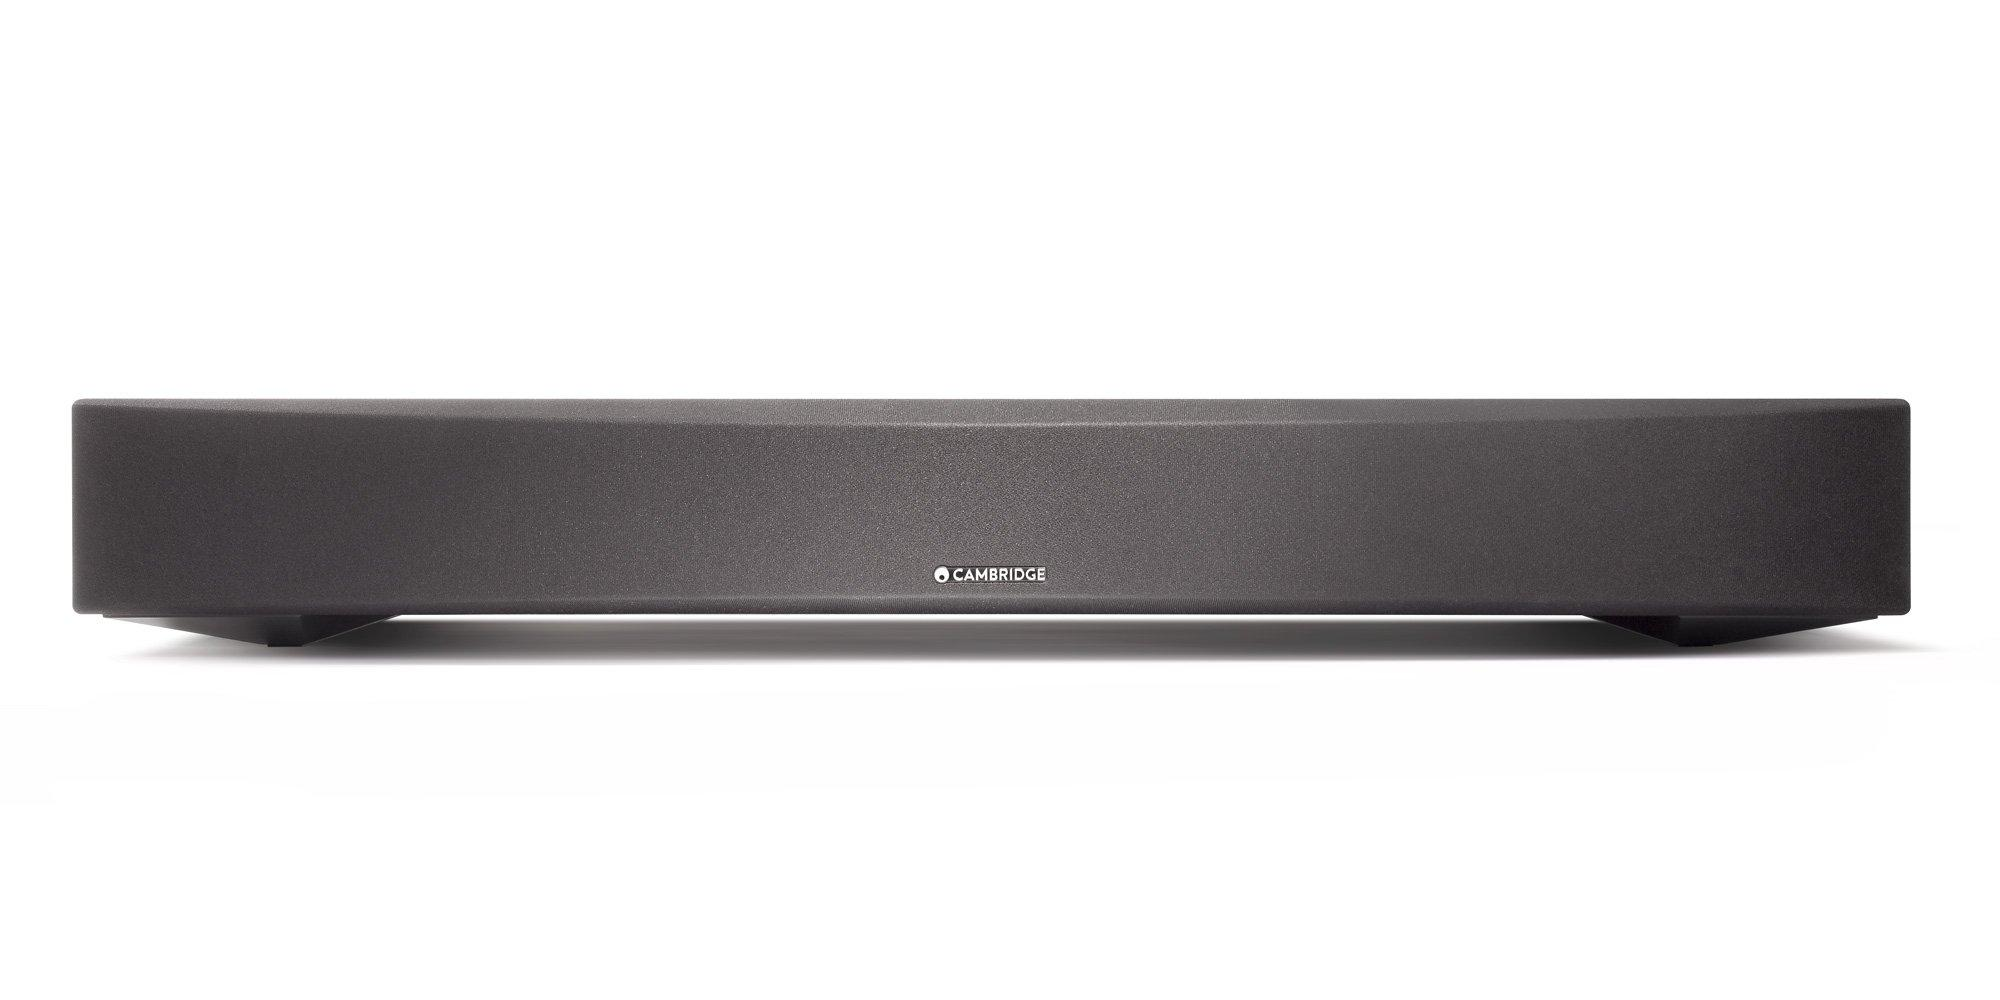 Cambridge TV5 (v2) Soundbar